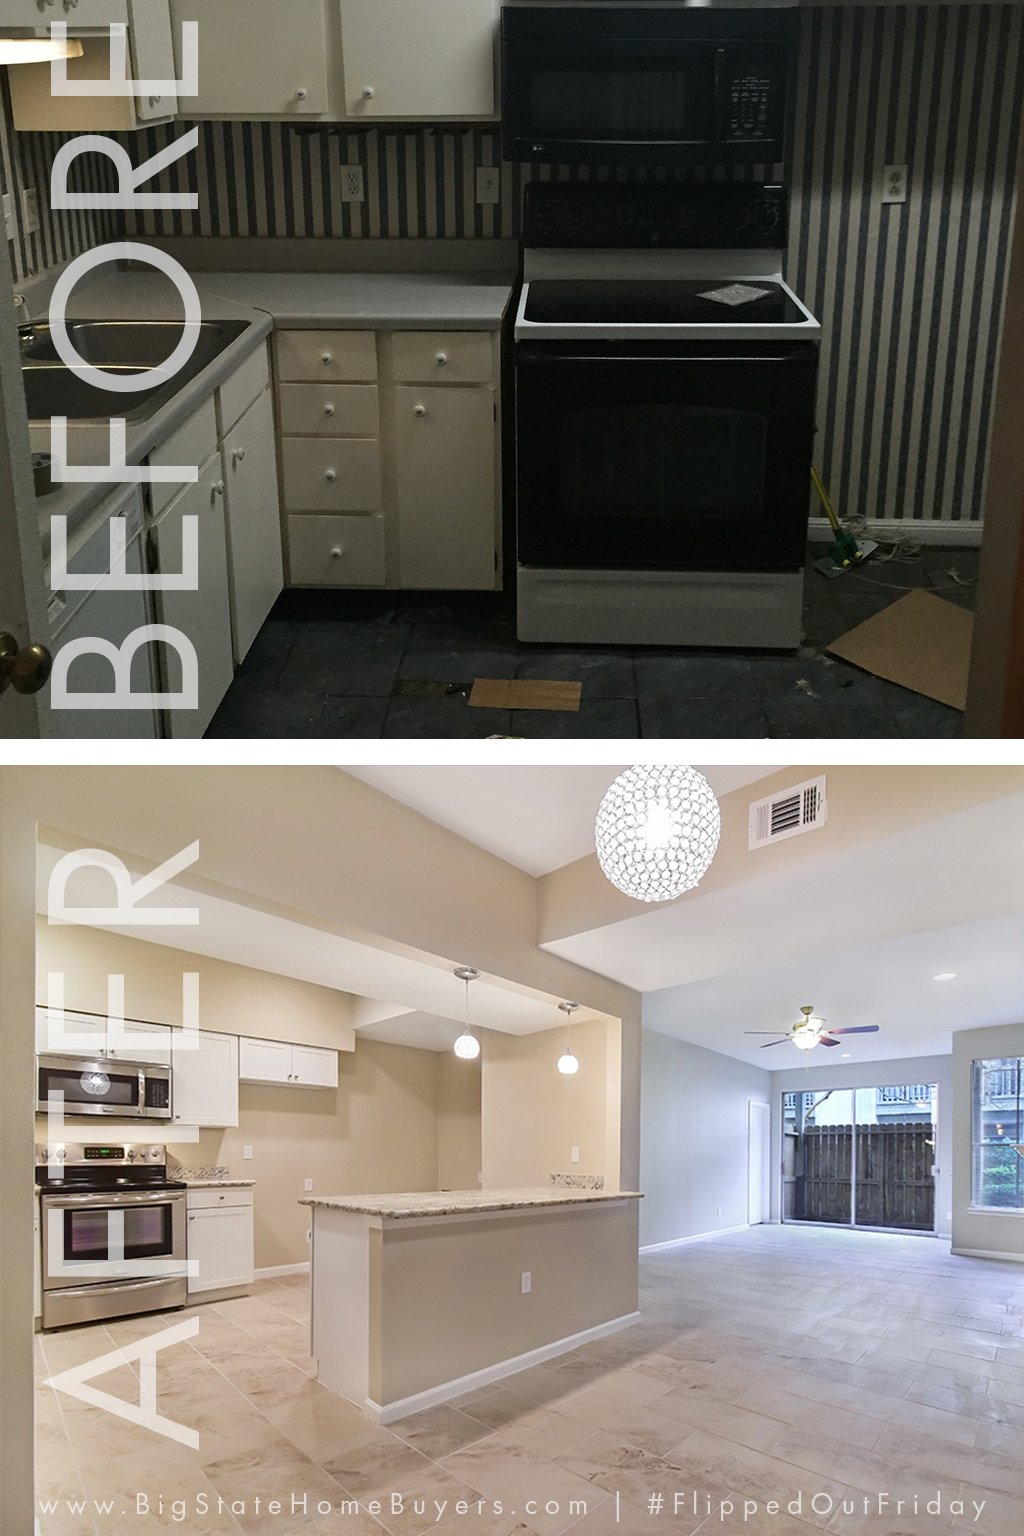 For this week's edition of #FlippedOutFriday, we bring you a story about 3 friends. Keith, Beverly and Bill lived together for many years in this condo. When Keith passed away, Beverly and Bill were surprised to inherit the house. We were able to clean up the title and they each received a substantial amount of money. After rehab, it sold in only 1 day! This kitchen renovation made a HUGE difference!